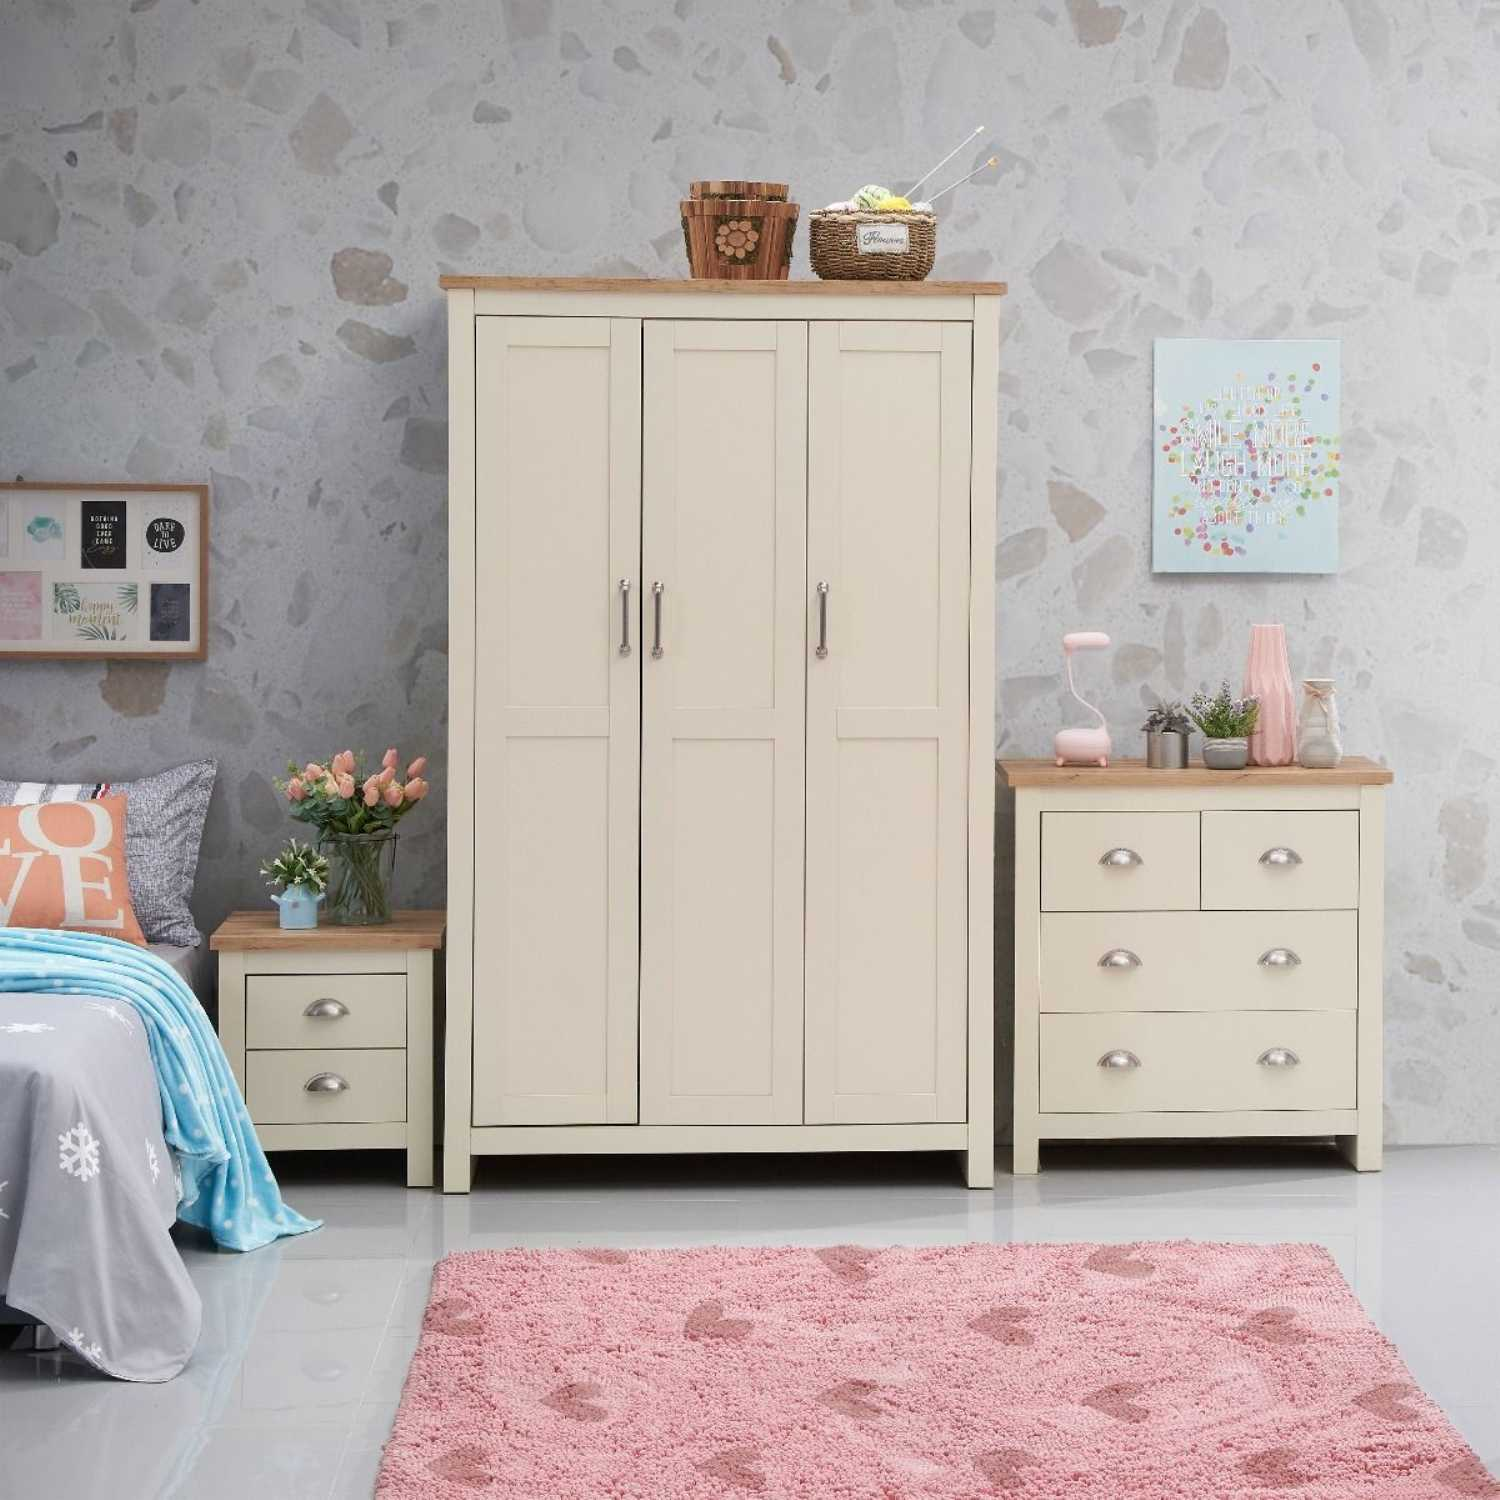 3 Piece Bedroom Set (3 Door Wardrobe, 2+2 Chest, 2 Drawer Bedside)